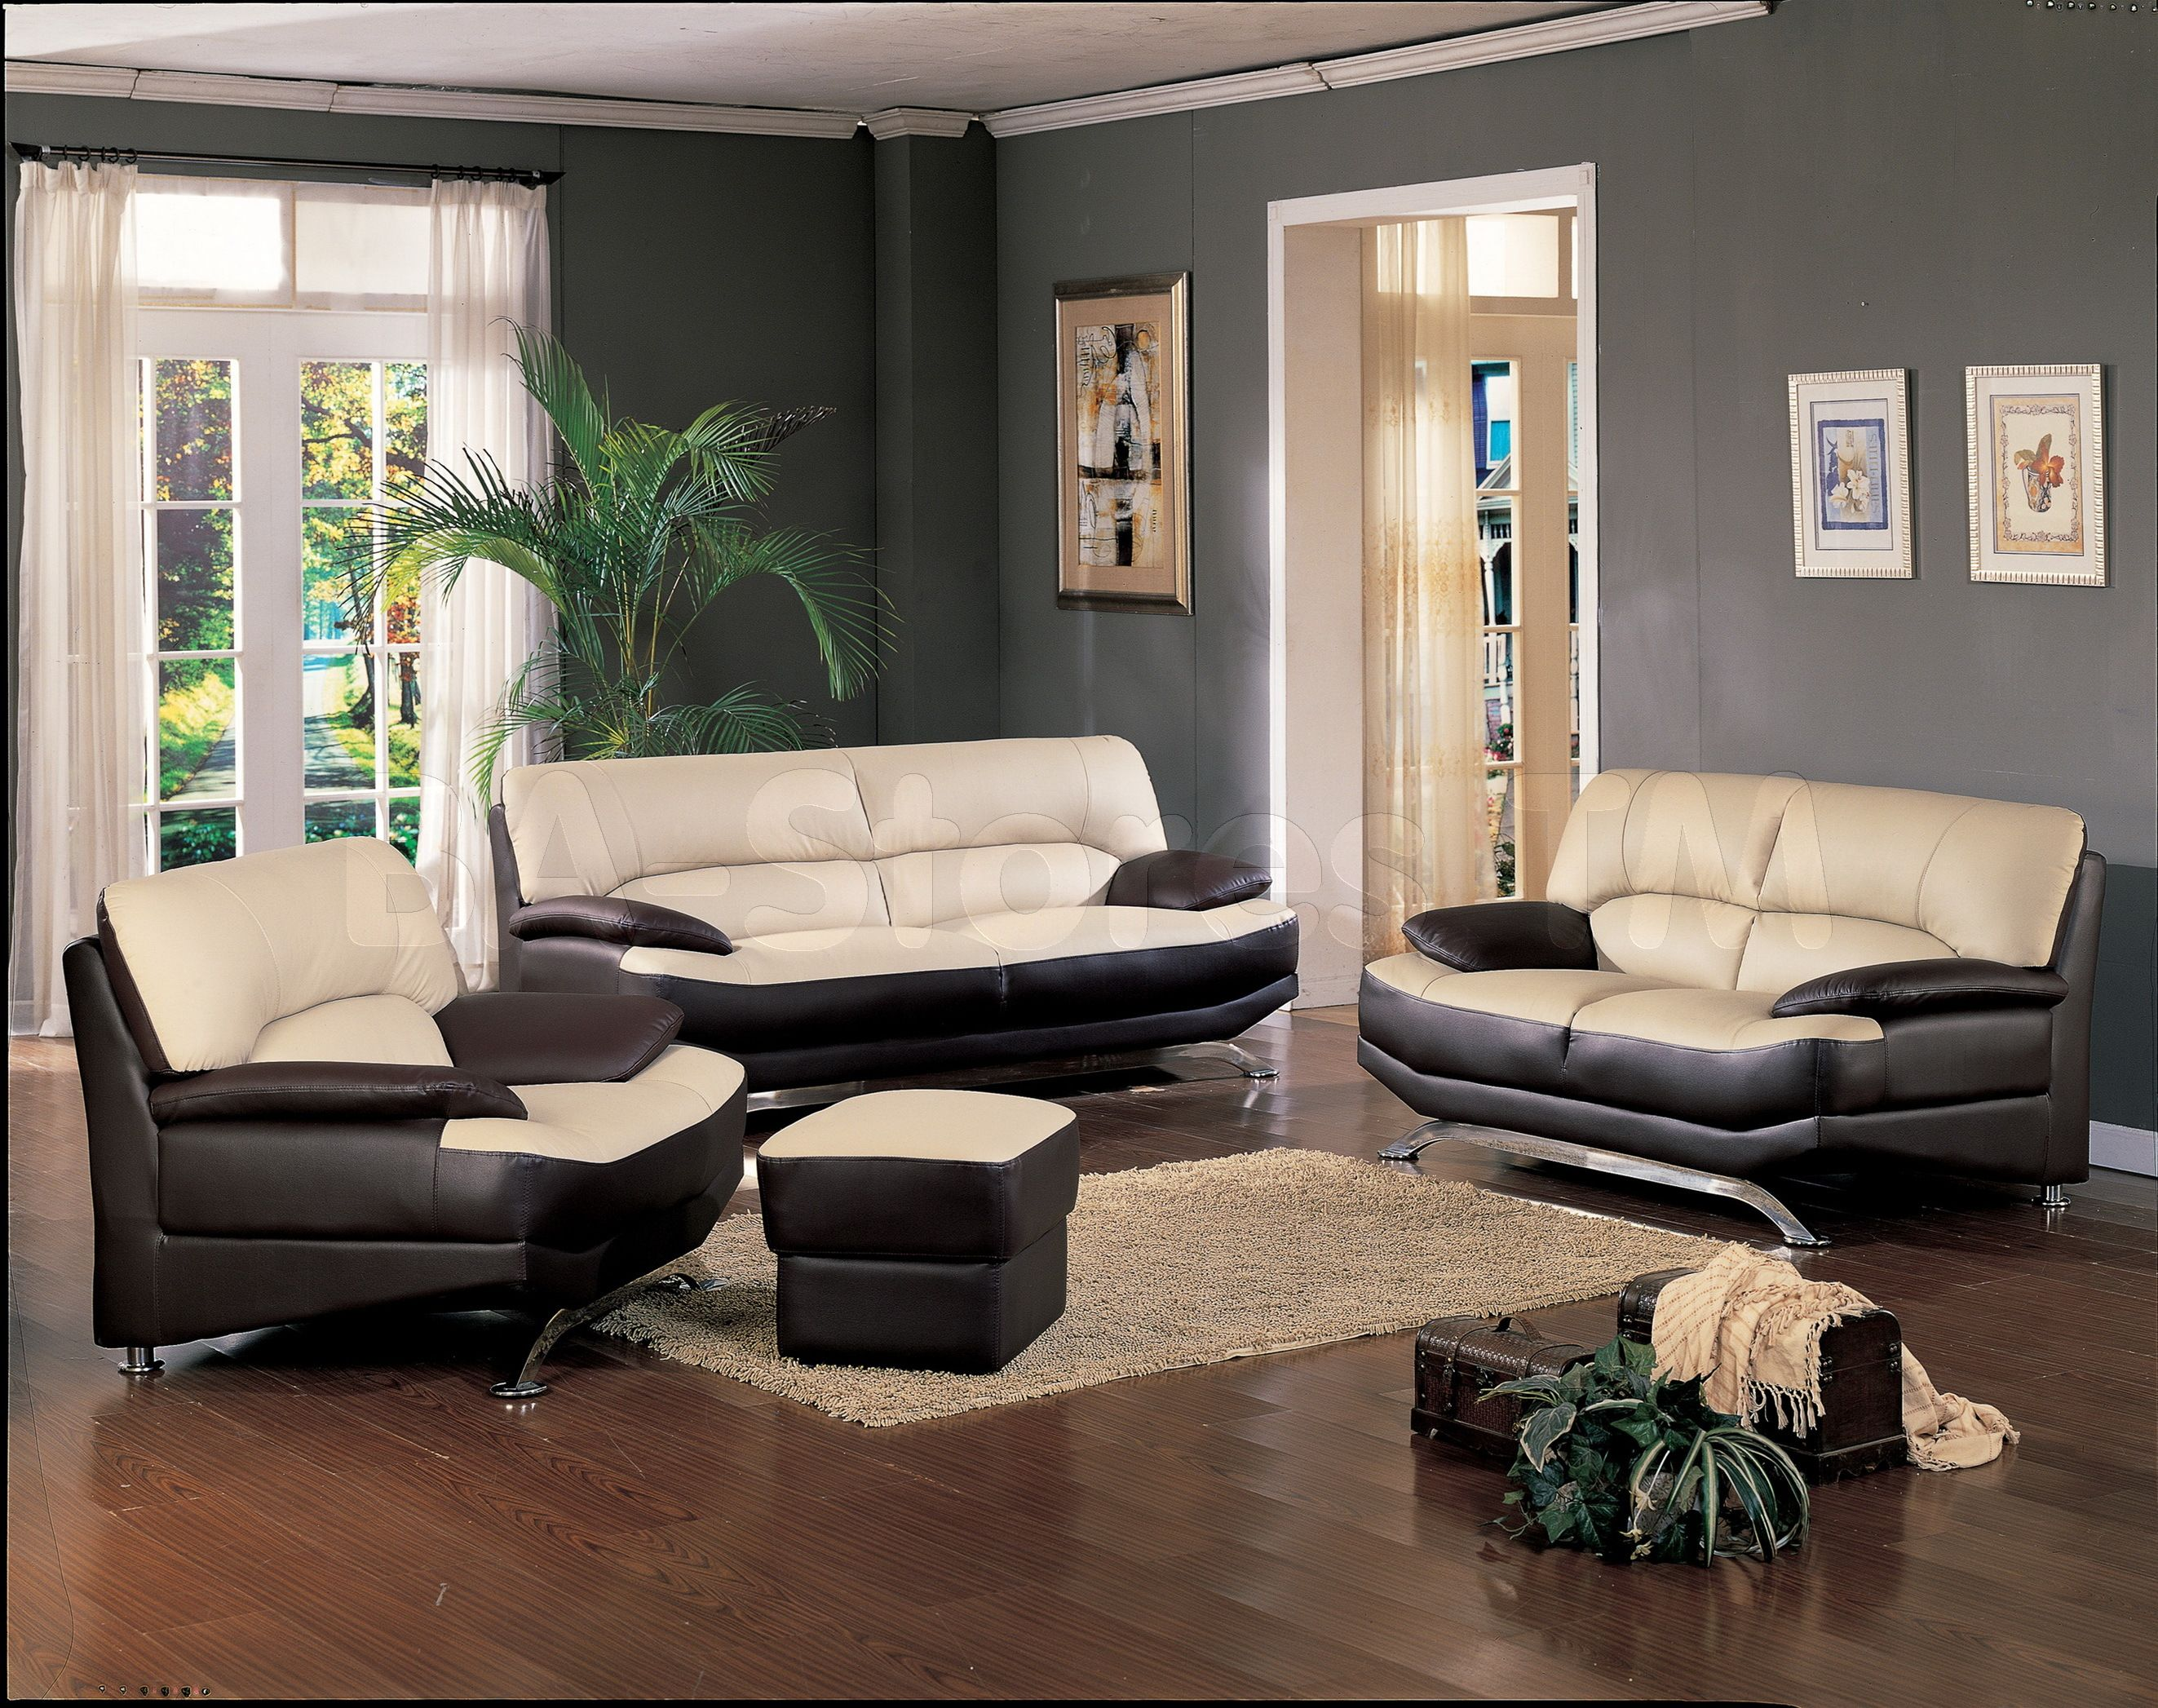 Cream and brown living room designs - Black And Cream Leather Couch On Dark Brown Wooden Floor Completed By White Fabric Window Curtain Living Room